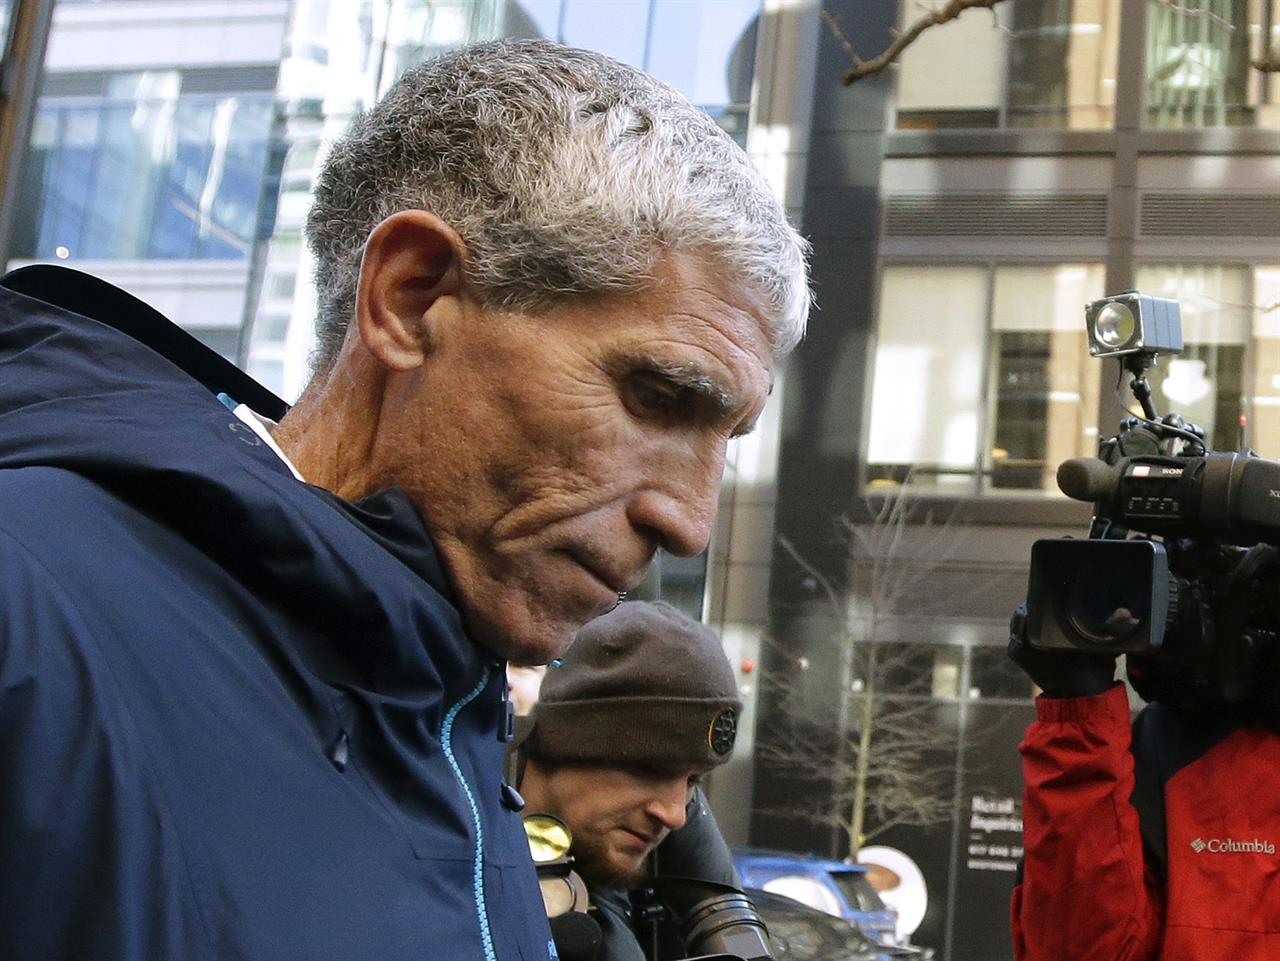 College admissions scandal: Where the cases stand | AM 660